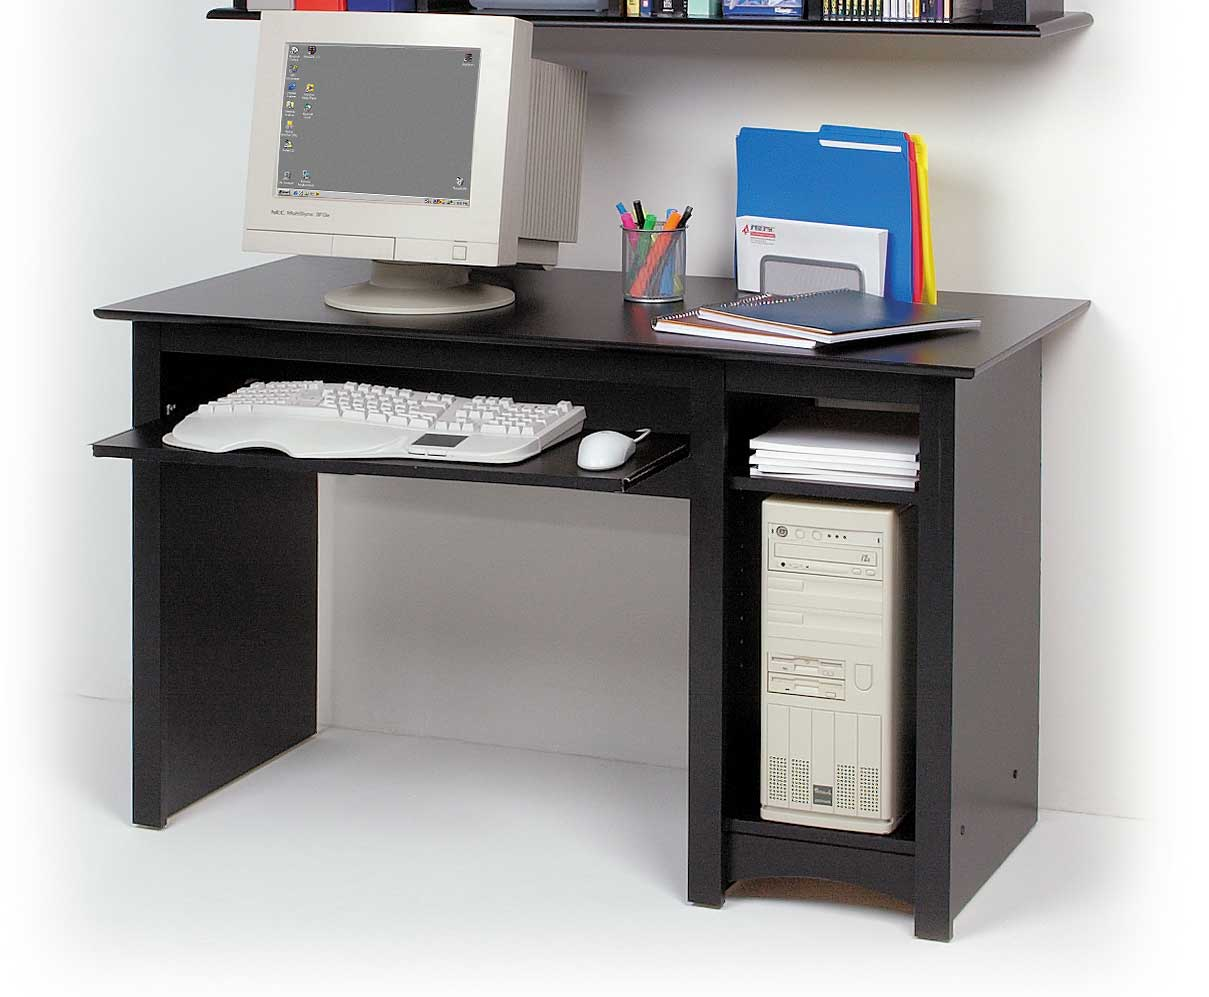 Space Saving Home Office Ideas With IKEA Desks For Small